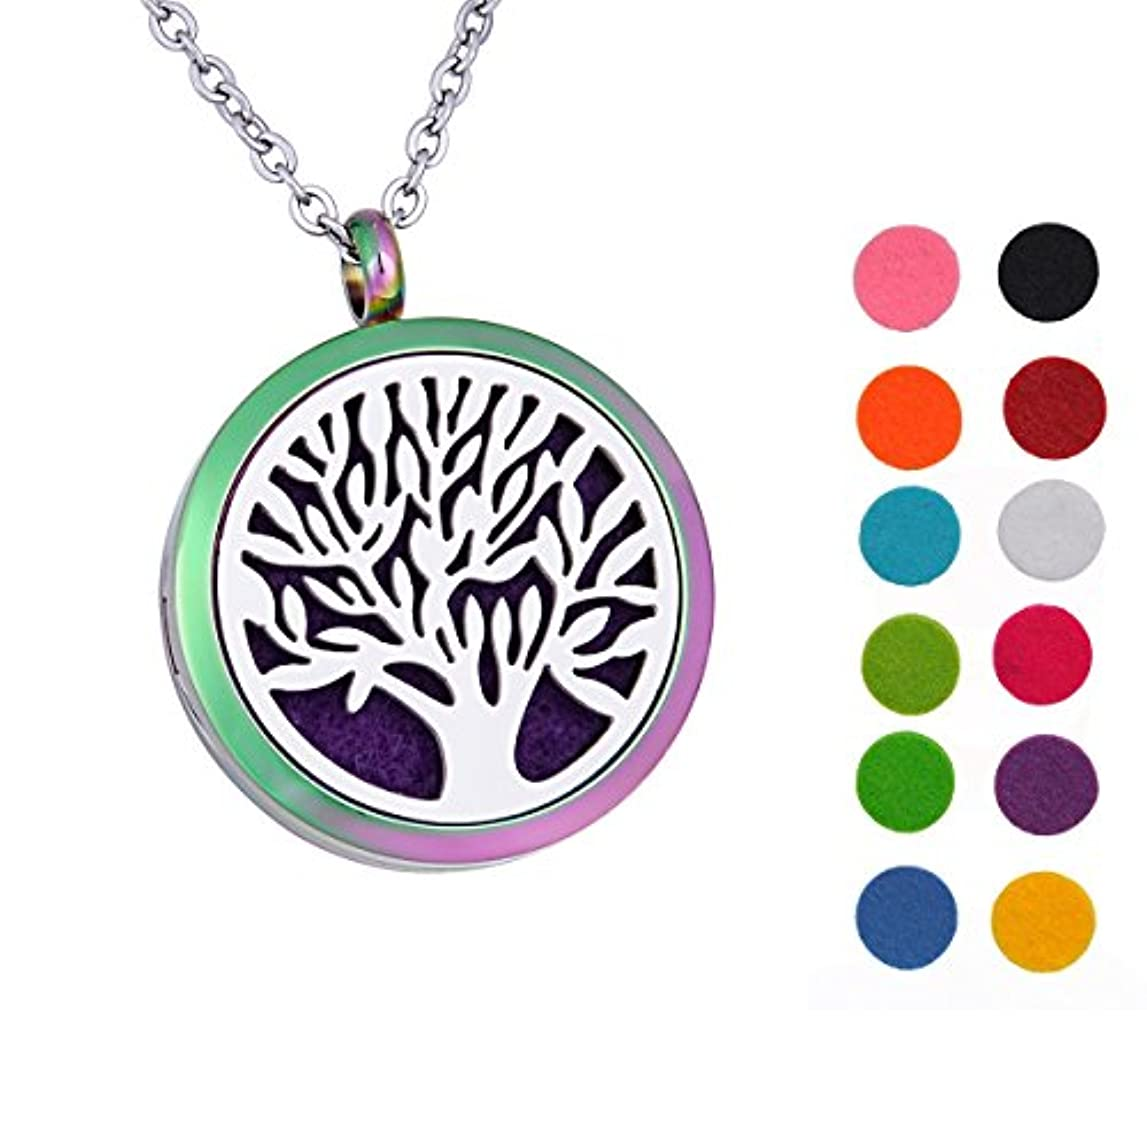 Tree of Life Aromatherapy Essential Oil Diffuserネックレス316ステンレス鋼ロケットペンダント24